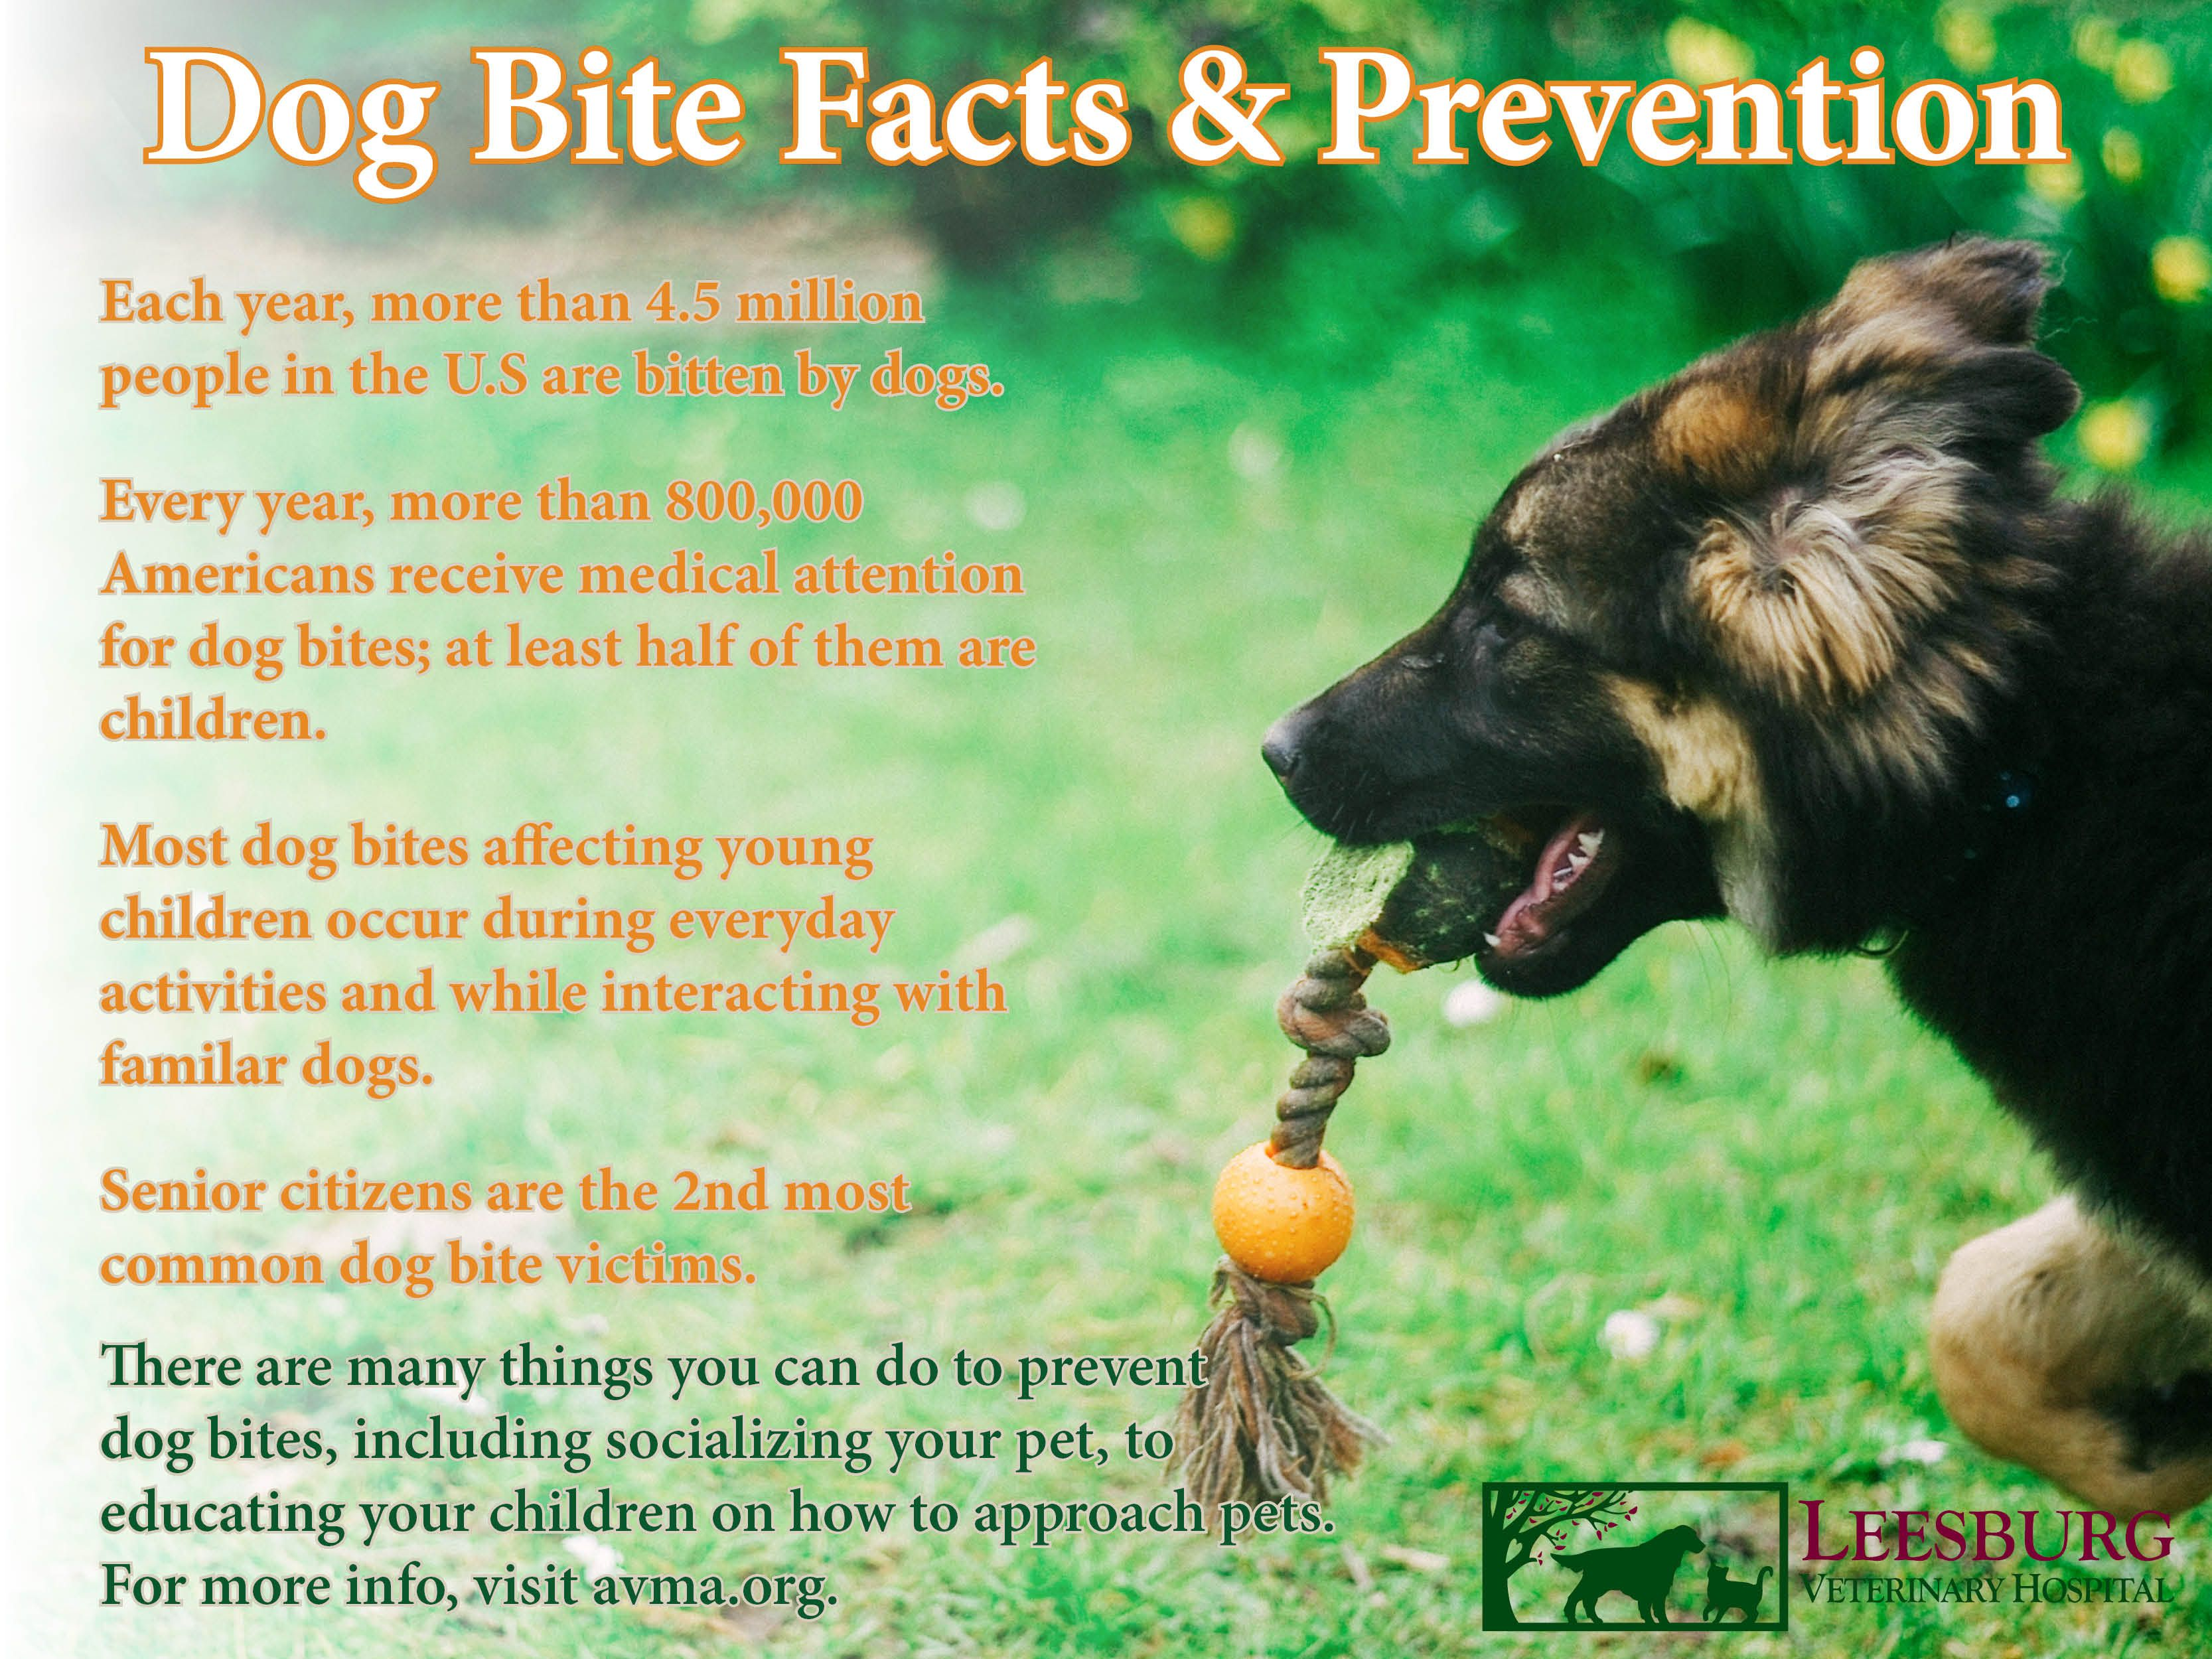 Dog Bite Prevention Facts And Tips Get More Info From The